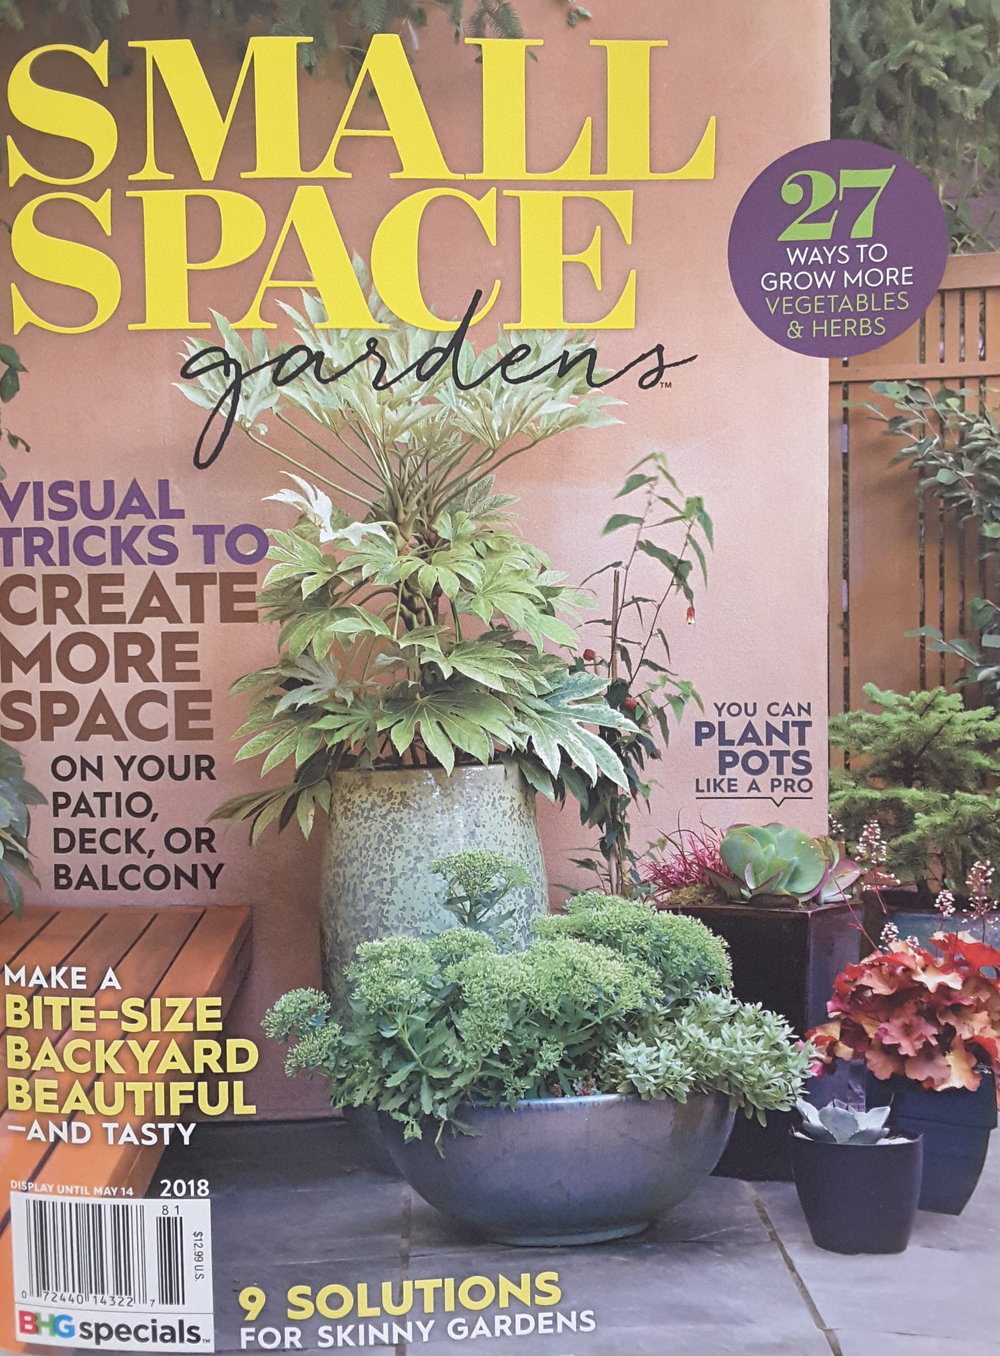 SMALL SPACE GARDENS. Link to publication imagery